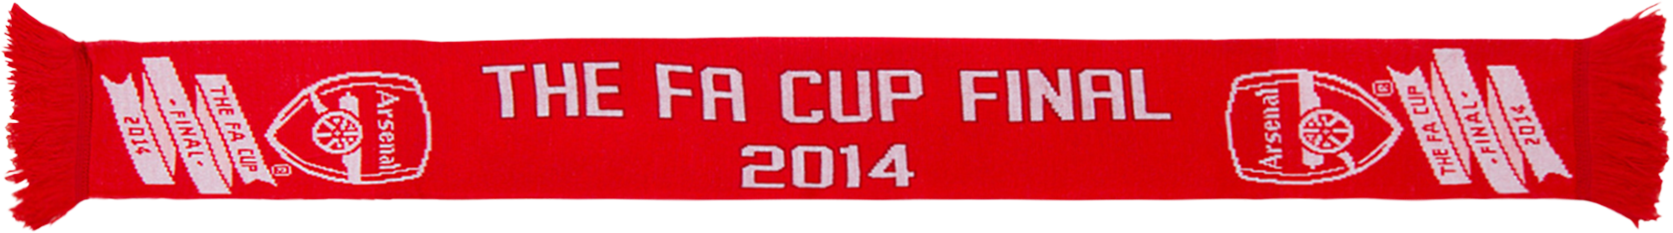 ARSENAL-THE-FA-CUP-FINAL